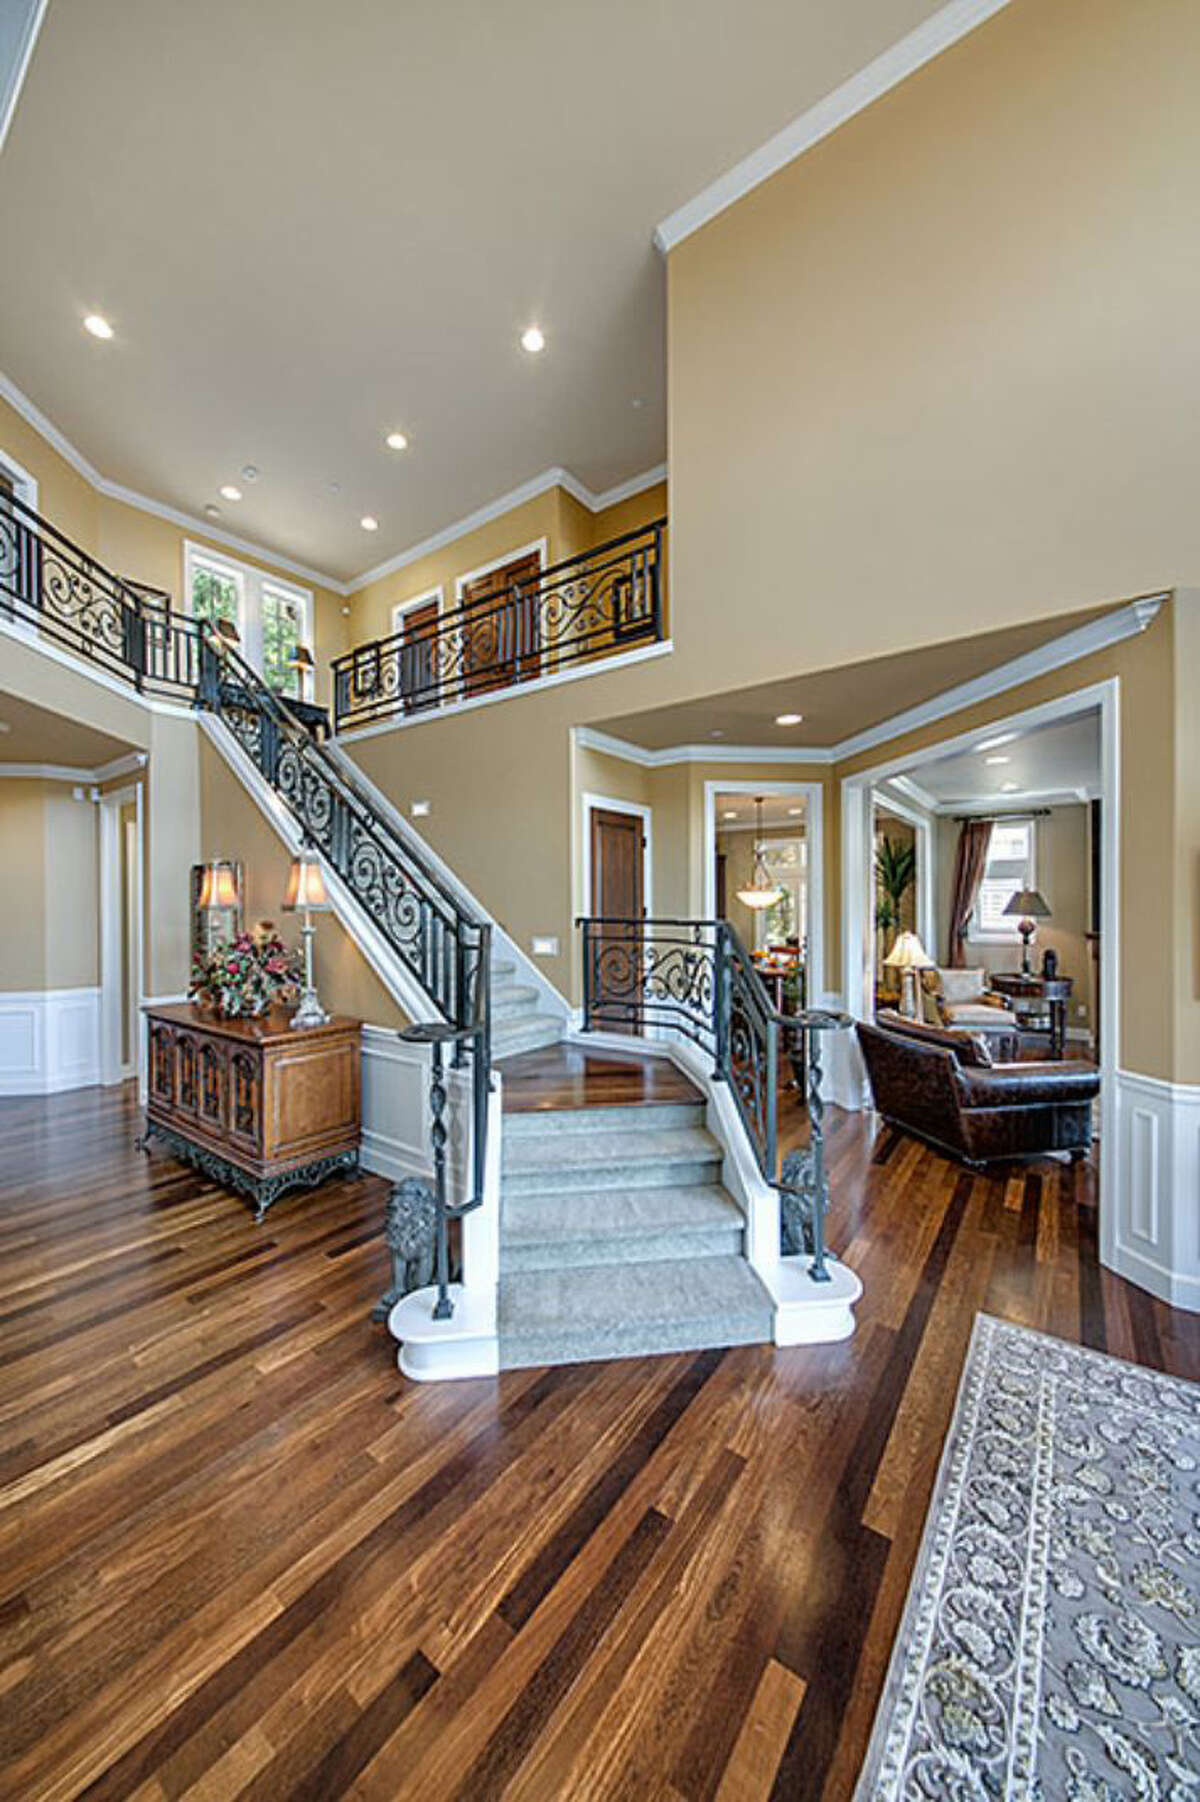 Here's the entry to the home at 1756 Harrison Way N.E. The home is listed for $1.5 million, and a sale is pending.